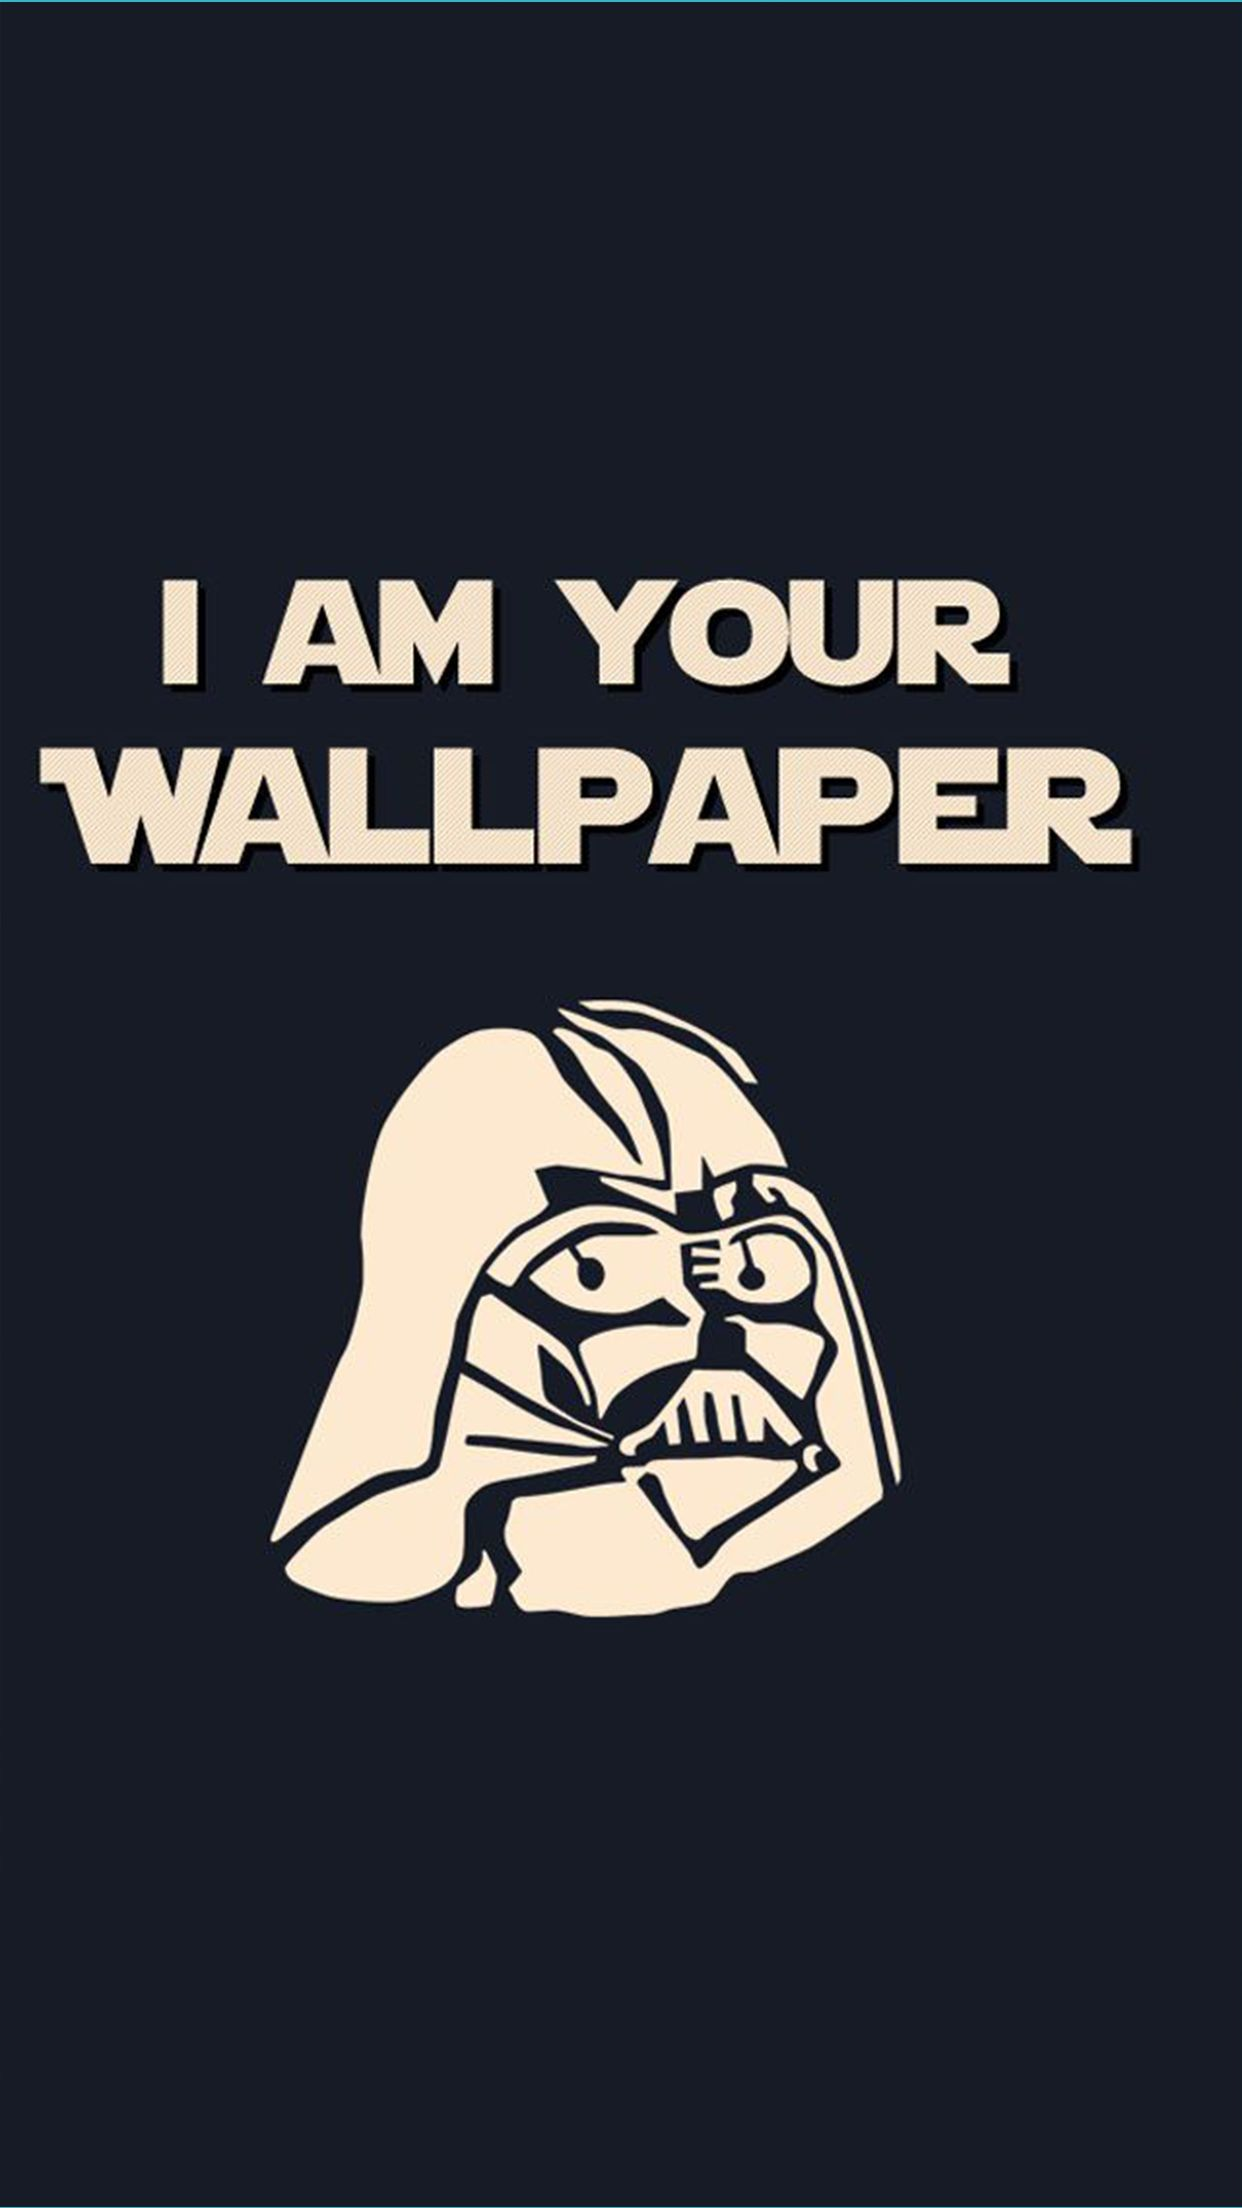 Nerd iphone wallpaper tumblr - Explore Star Wars Wallpaper Iphone And More